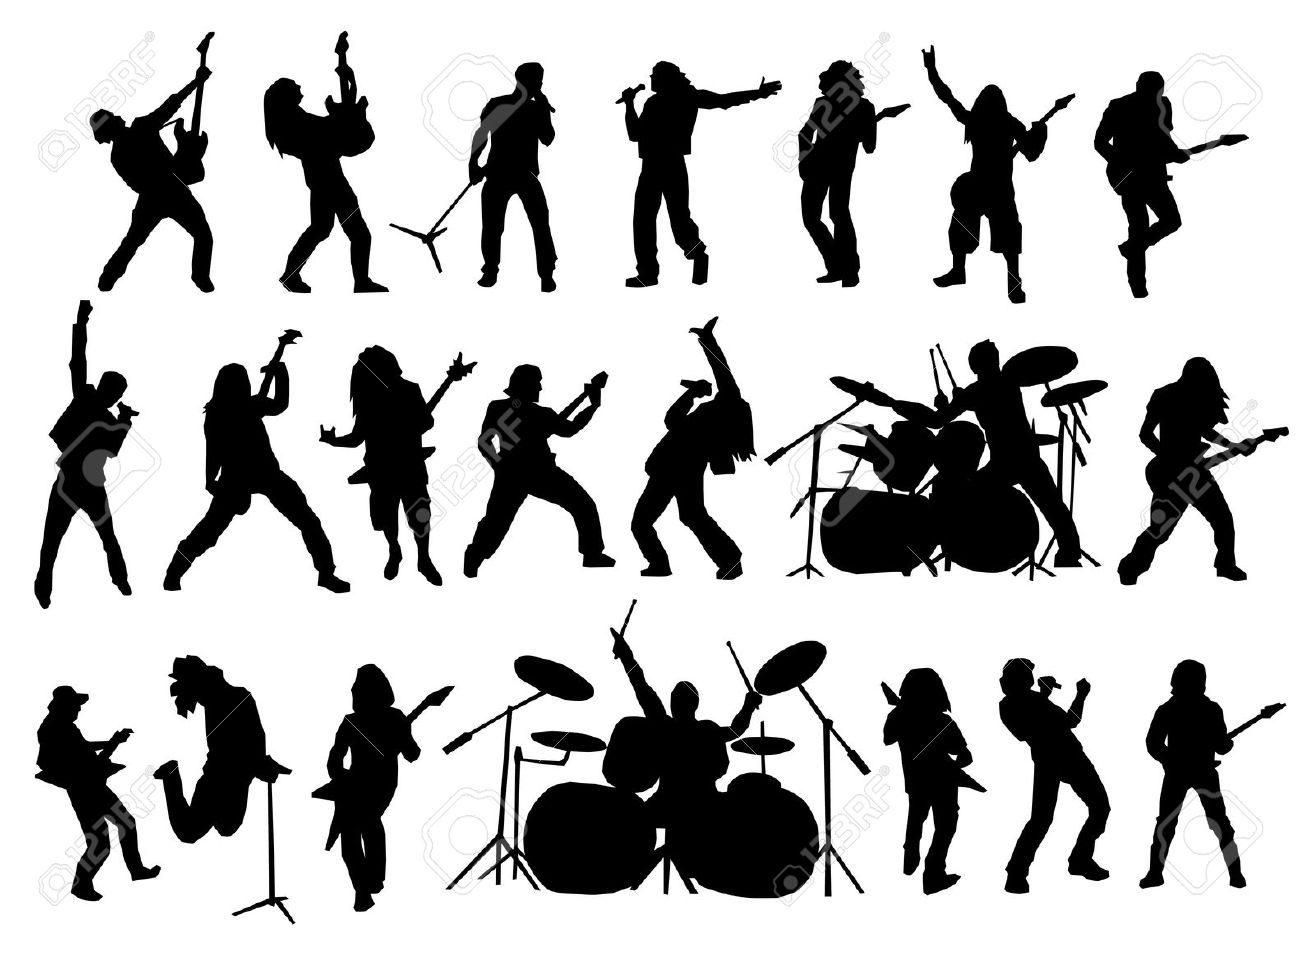 clipart transparent stock Free marching download clip. Vector band silhouette